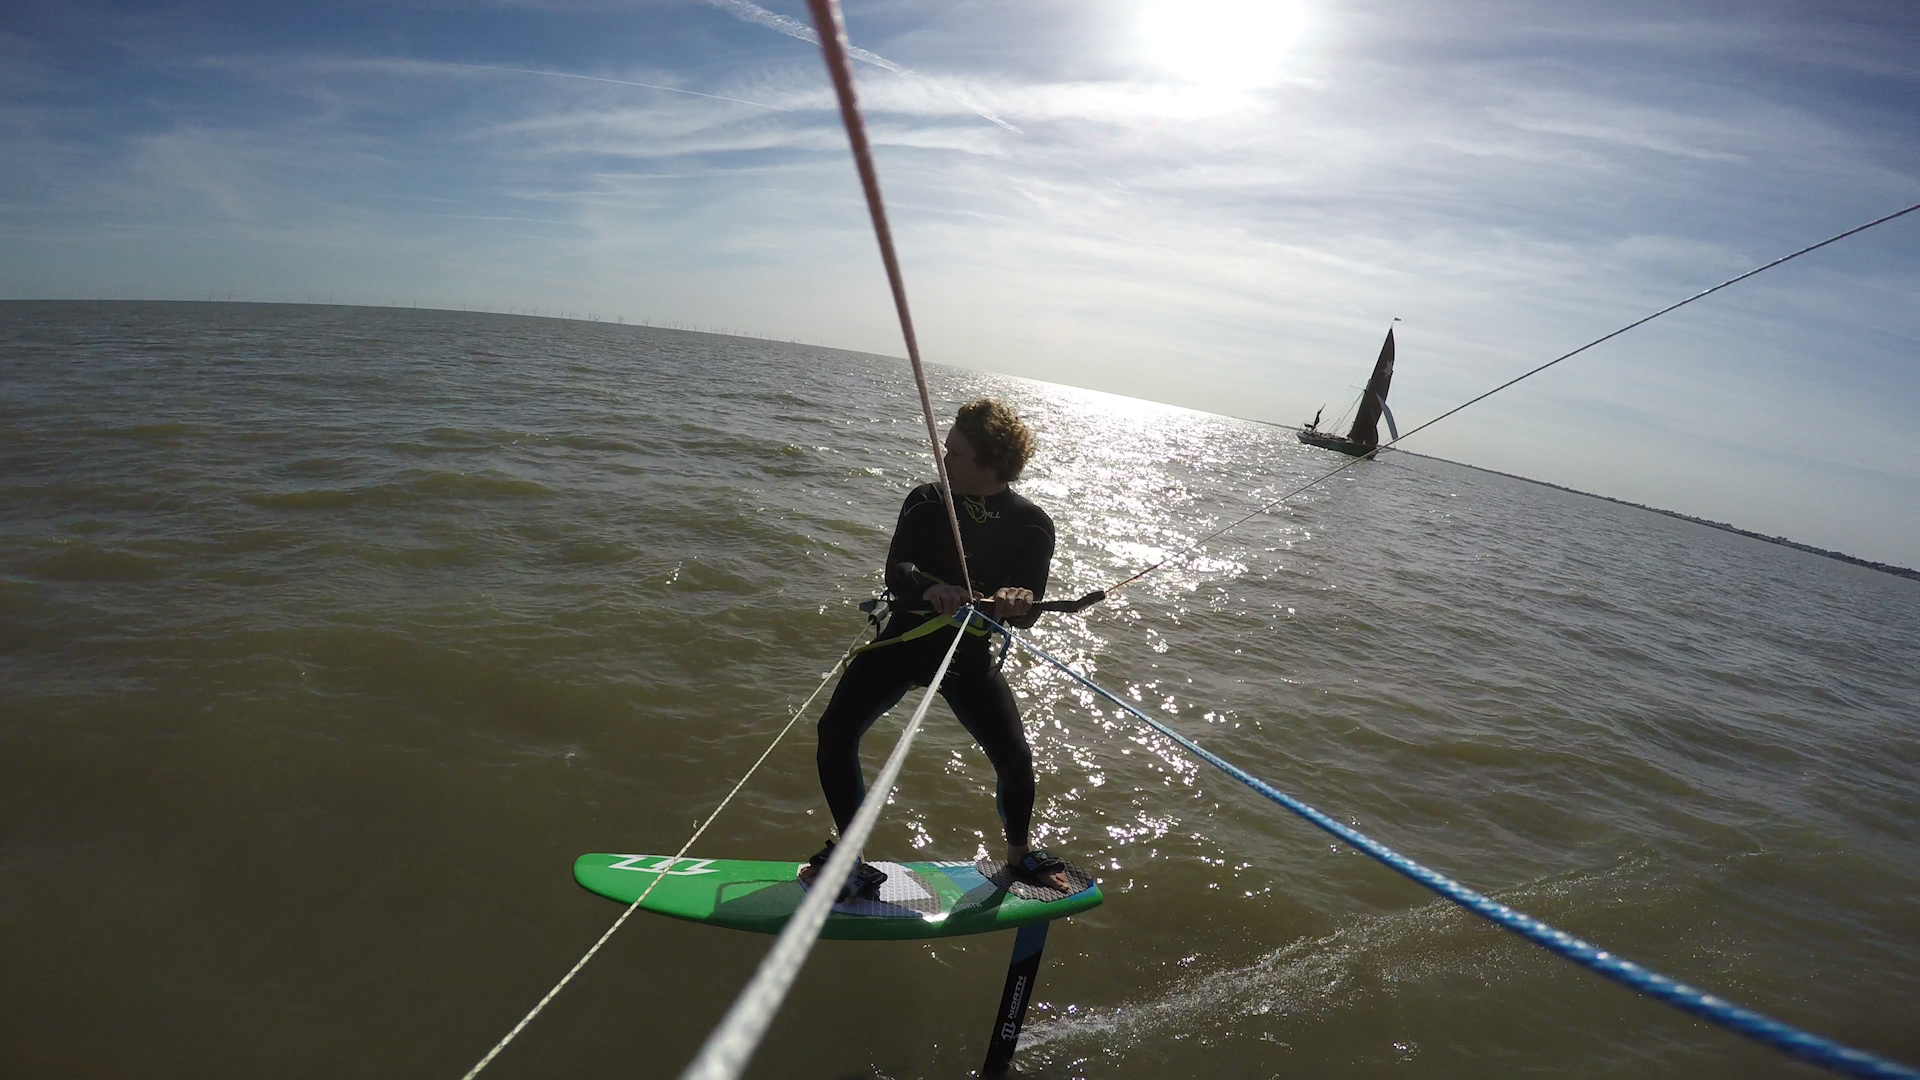 Hydrofoil kiteboarding introduction – learning to hydrofoil with push kiting kiteboarding school